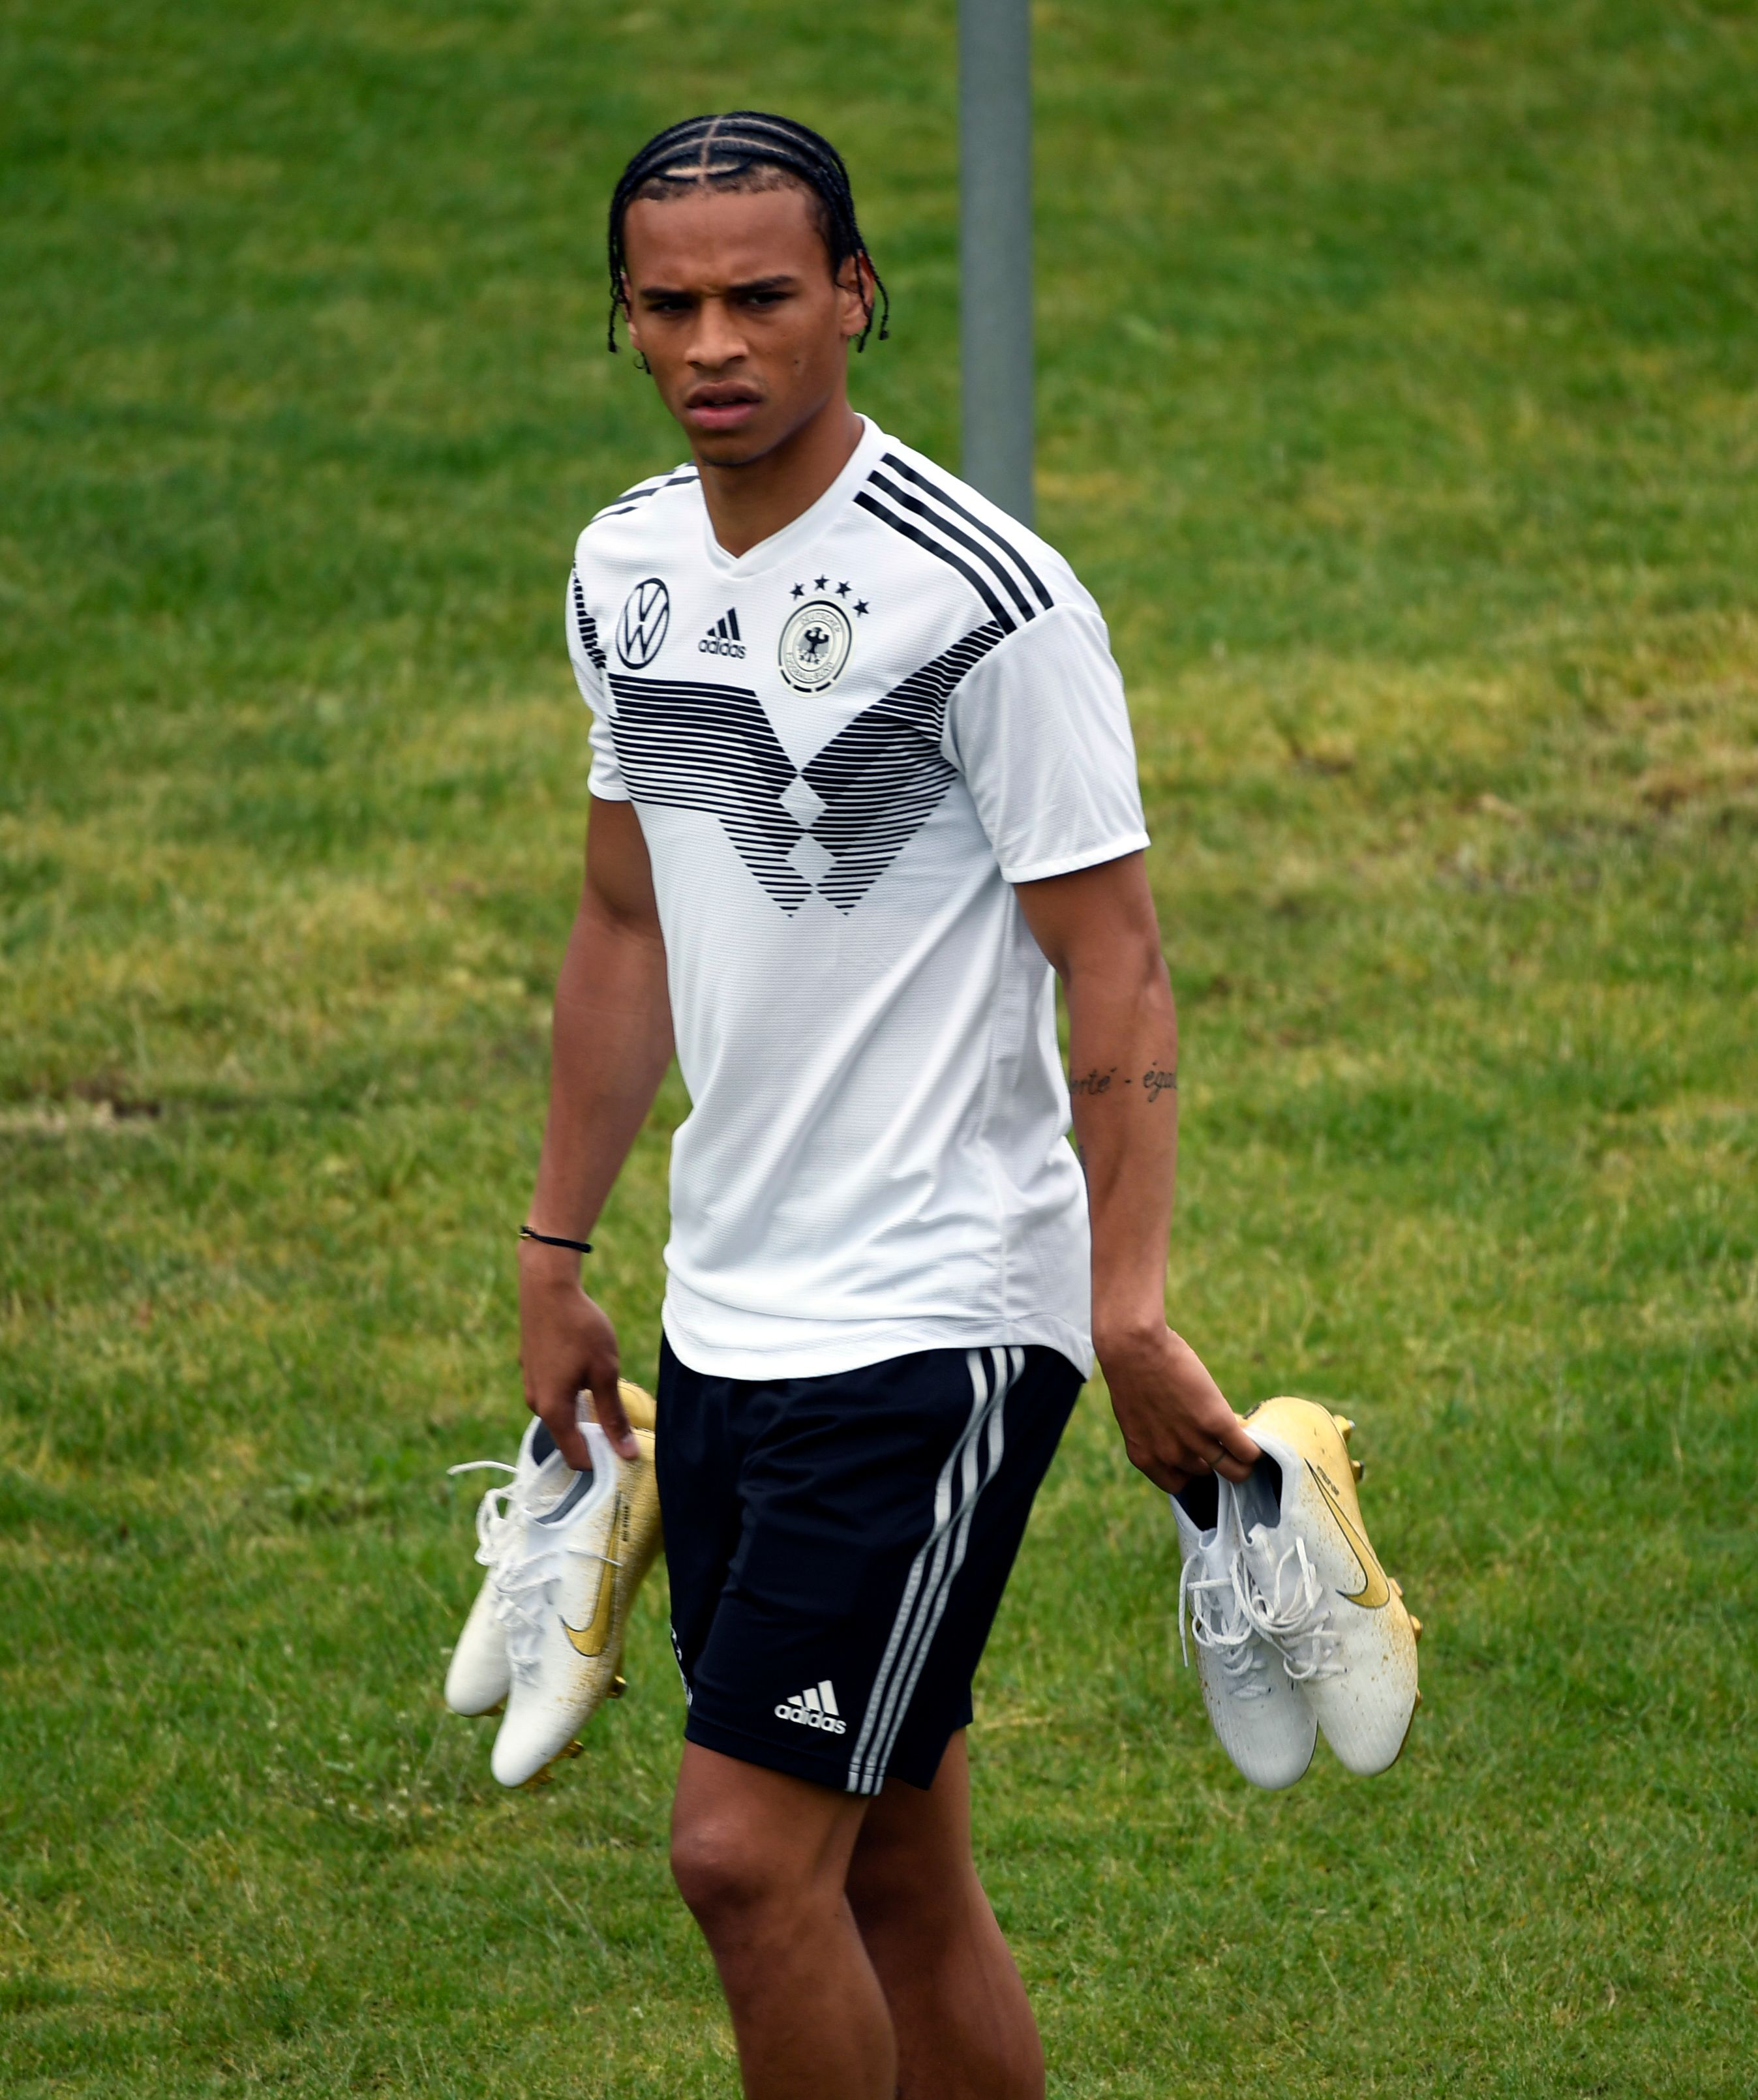 Wird wohl im Sommer kein Roter: Leroy Sané.